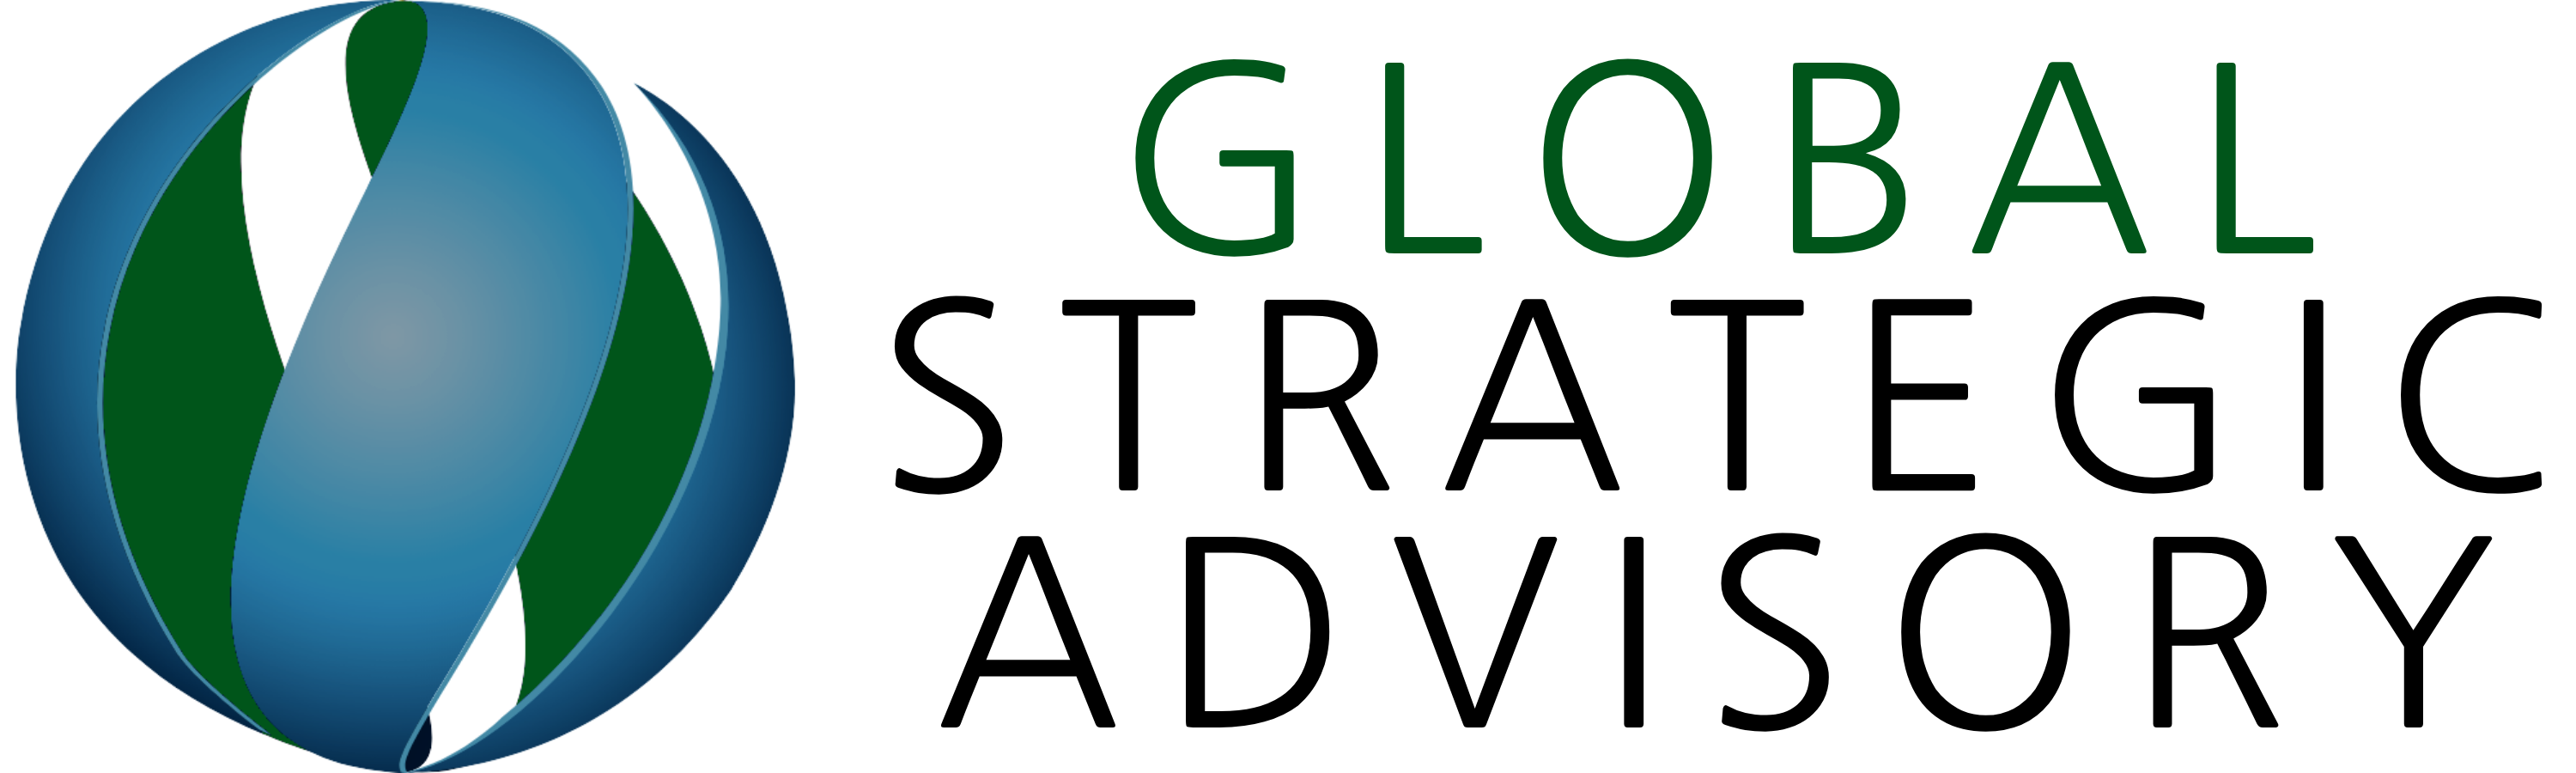 Global Strategic Advisory